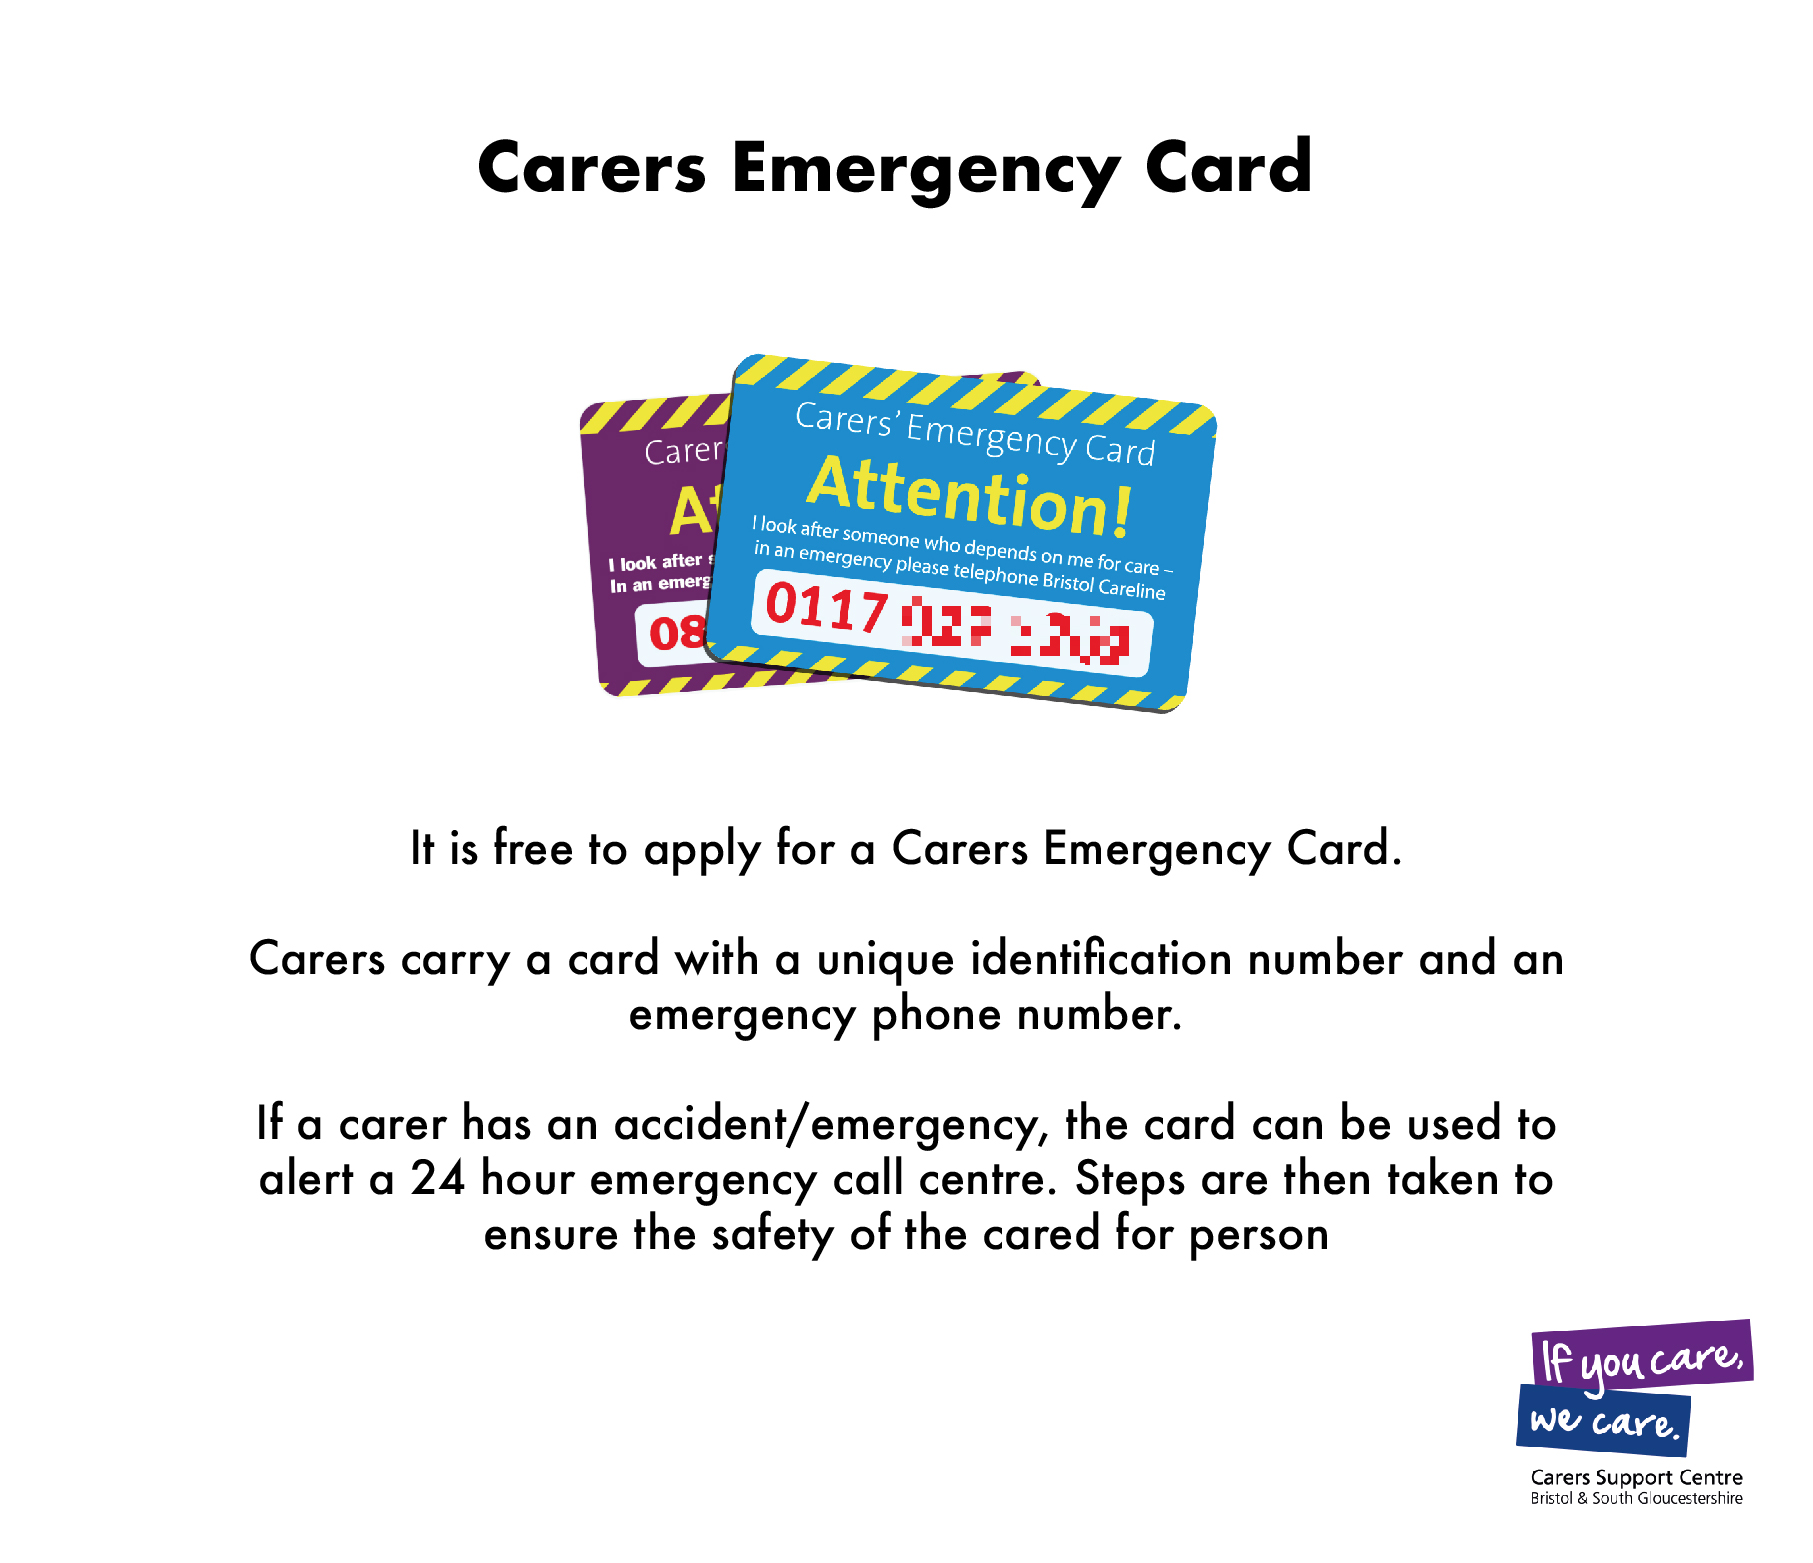 Carers Support Centre helps local carers through COVID-19